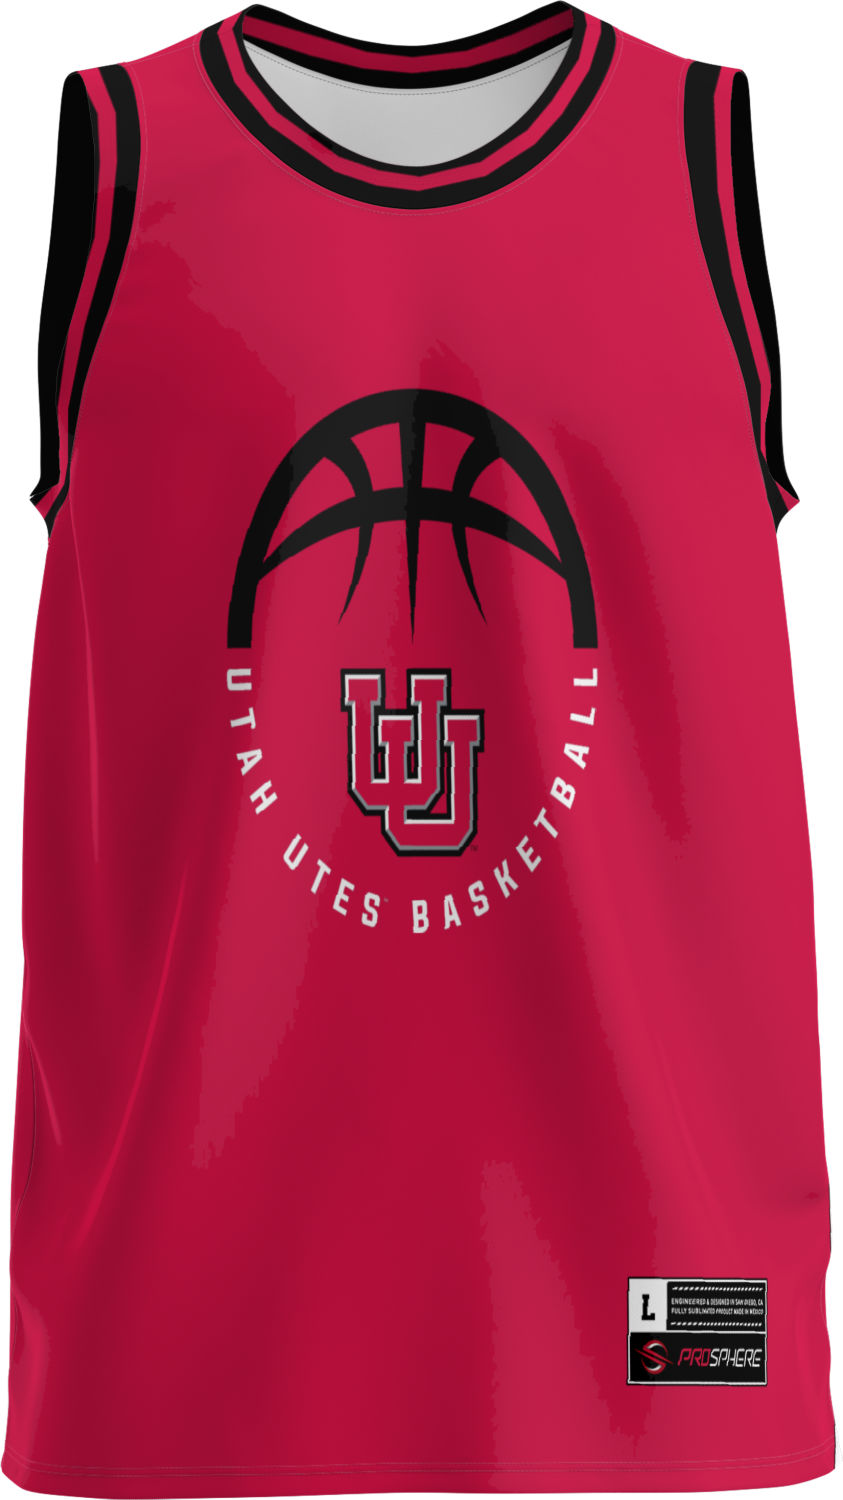 University of Utah Adult Replica Basketball Fan Jersey - Retro